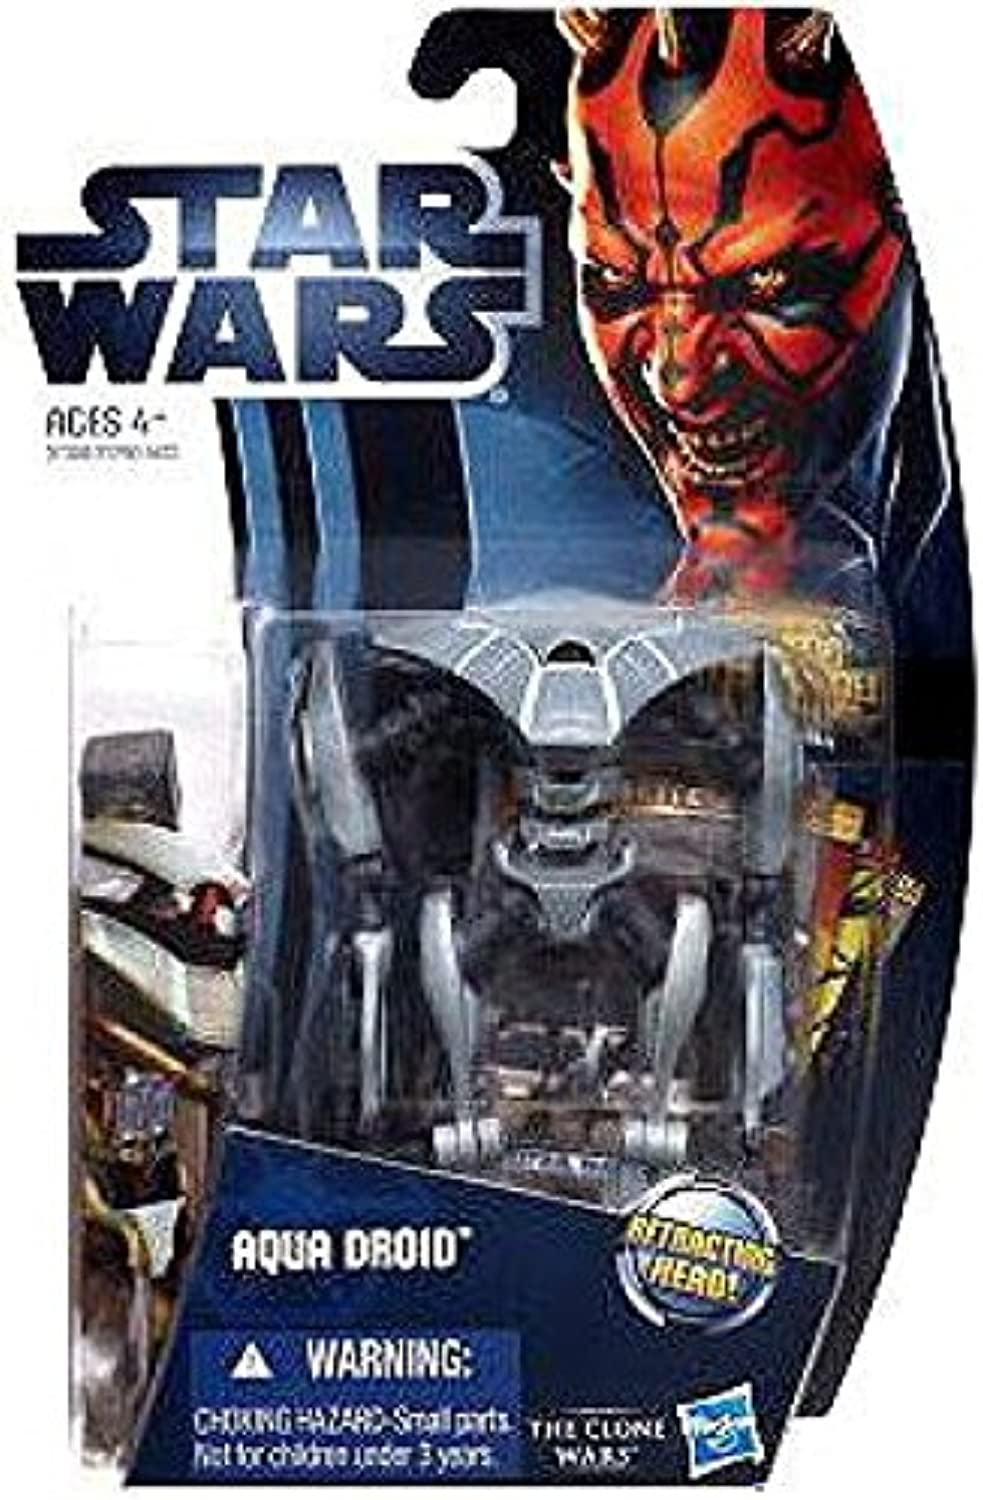 Hasbro Year 2012 Star Wars The Clone Wars Galactic Battle Game Series 4 Inch Tall Action Figure - CW10 AQUA DROID with Retracting Head, Battle Game Card, Die and Figure Display Base